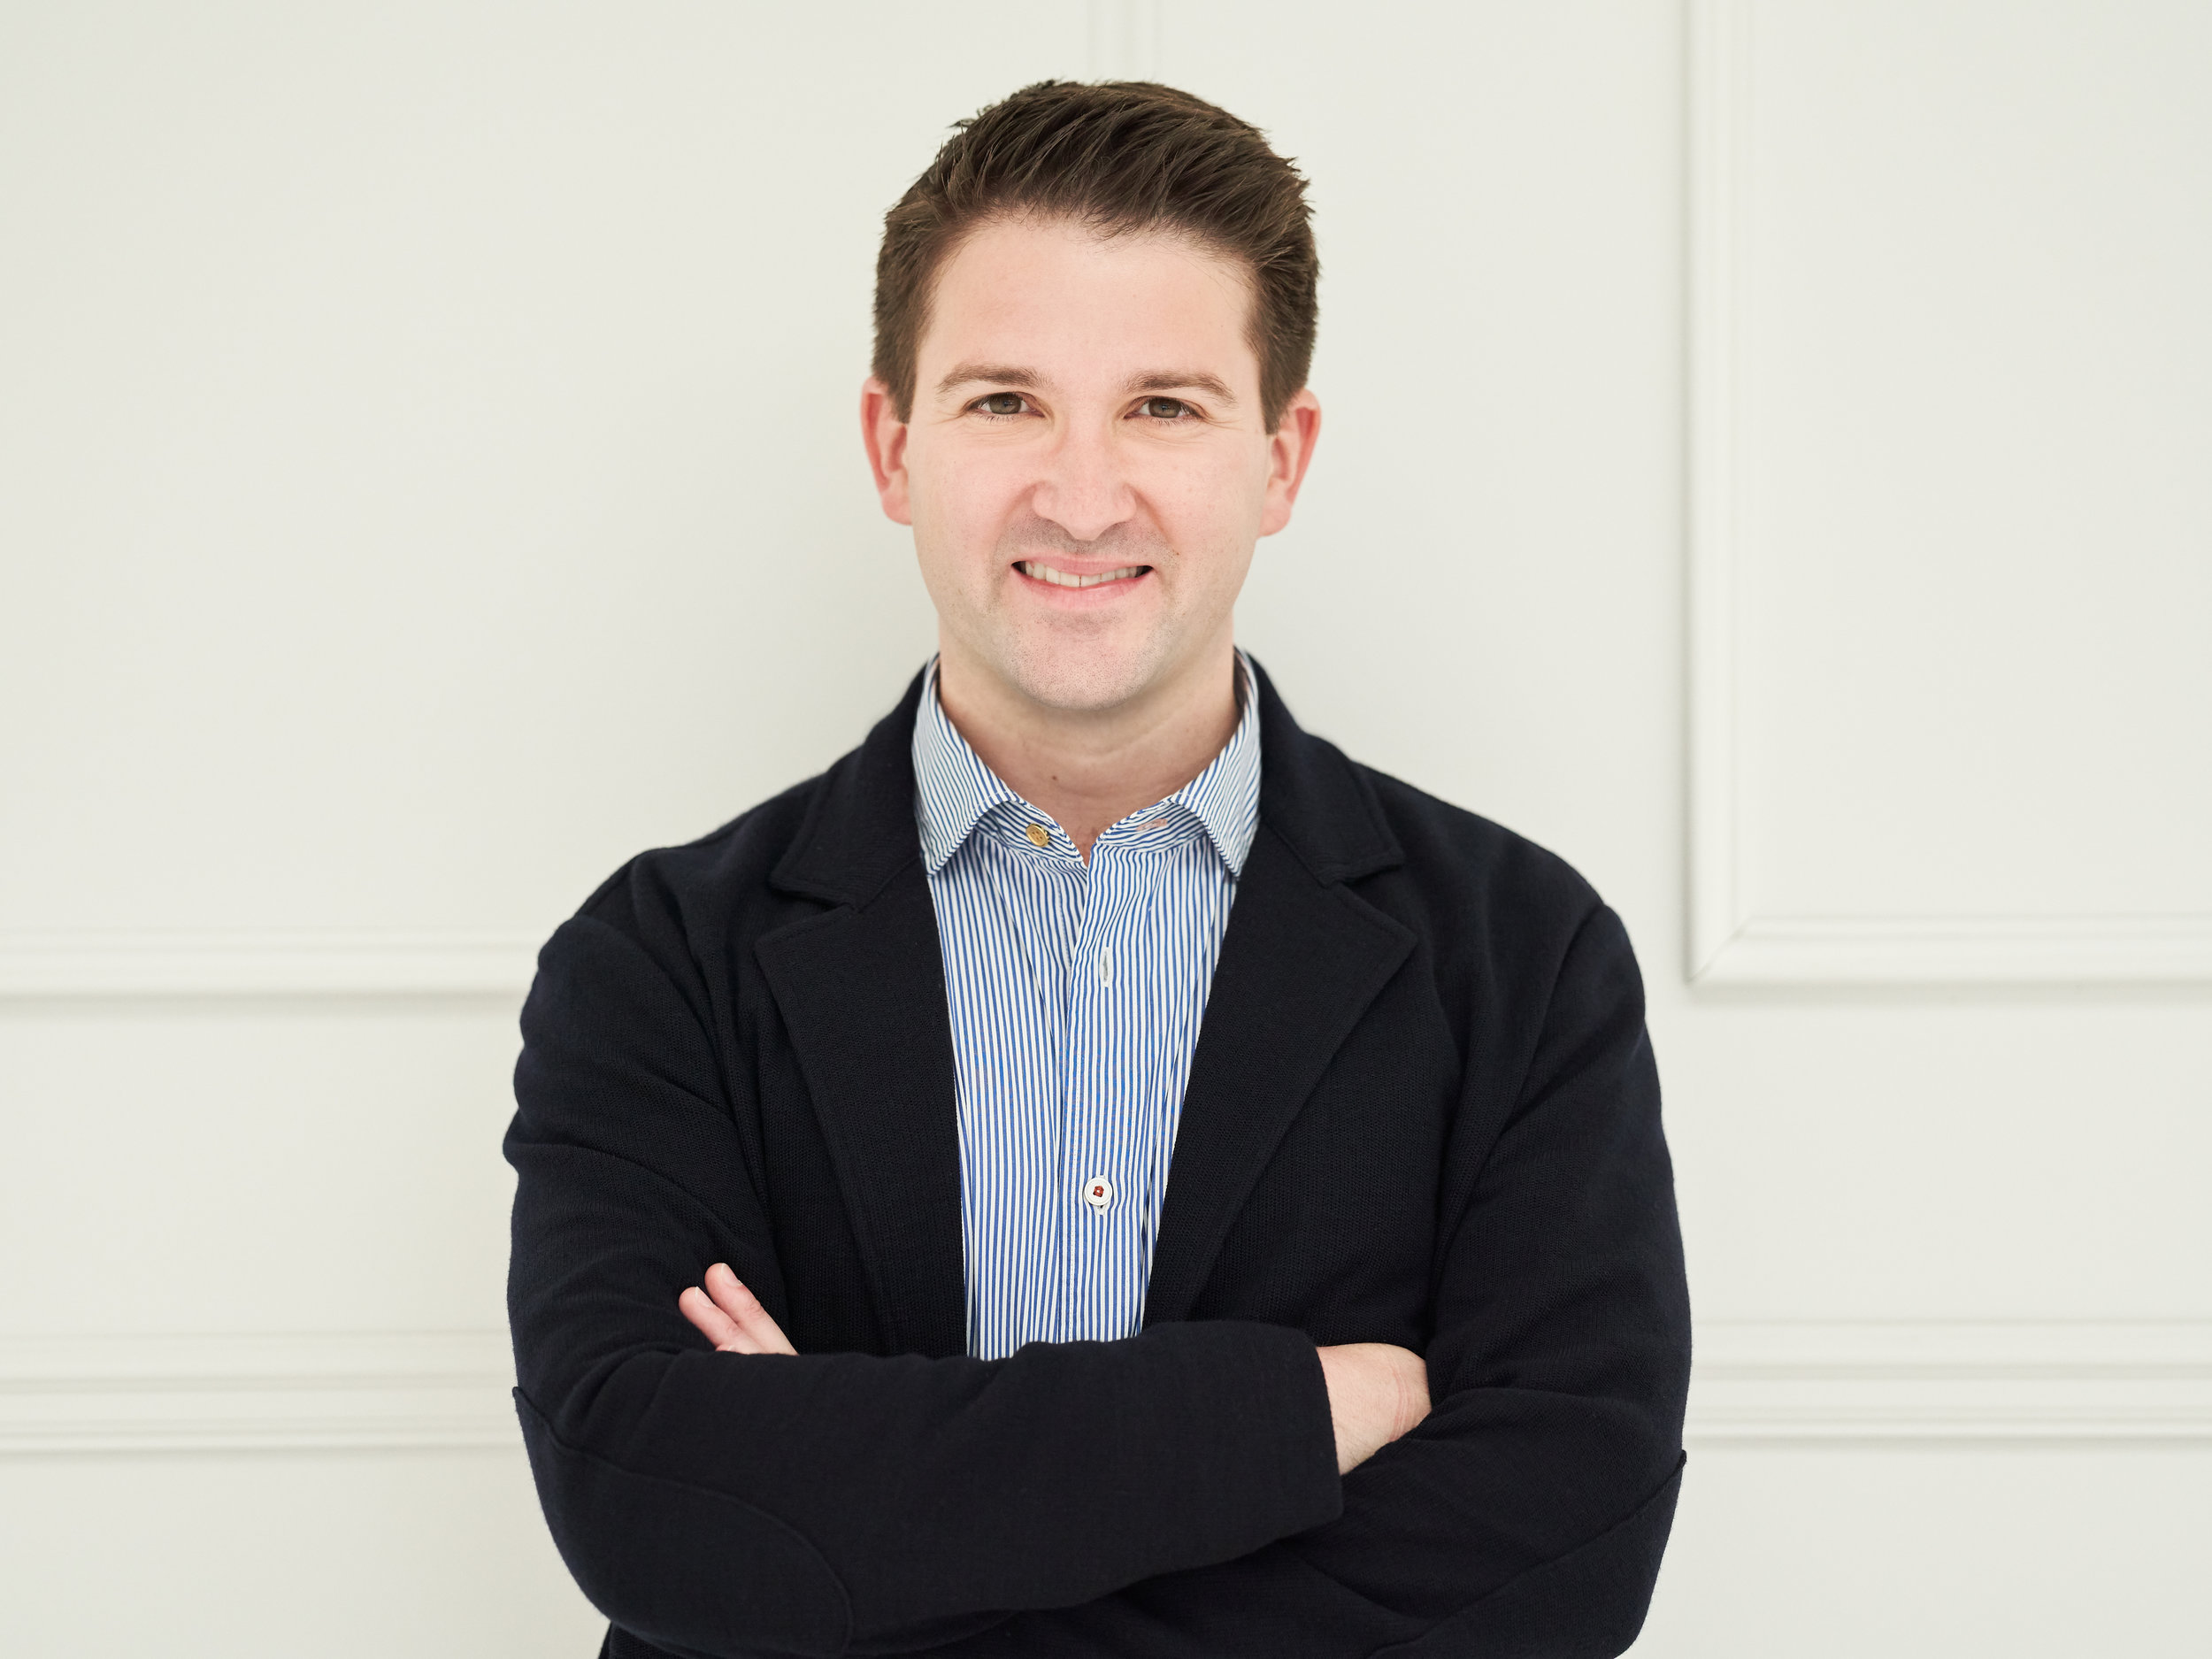 Barnaby Smith - Barnaby Smith is Artistic Director of our own internationally renowned vocal ensemble, VOCES8 and as such is in demand as a conductor, choir trainer, countertenor and arranger.